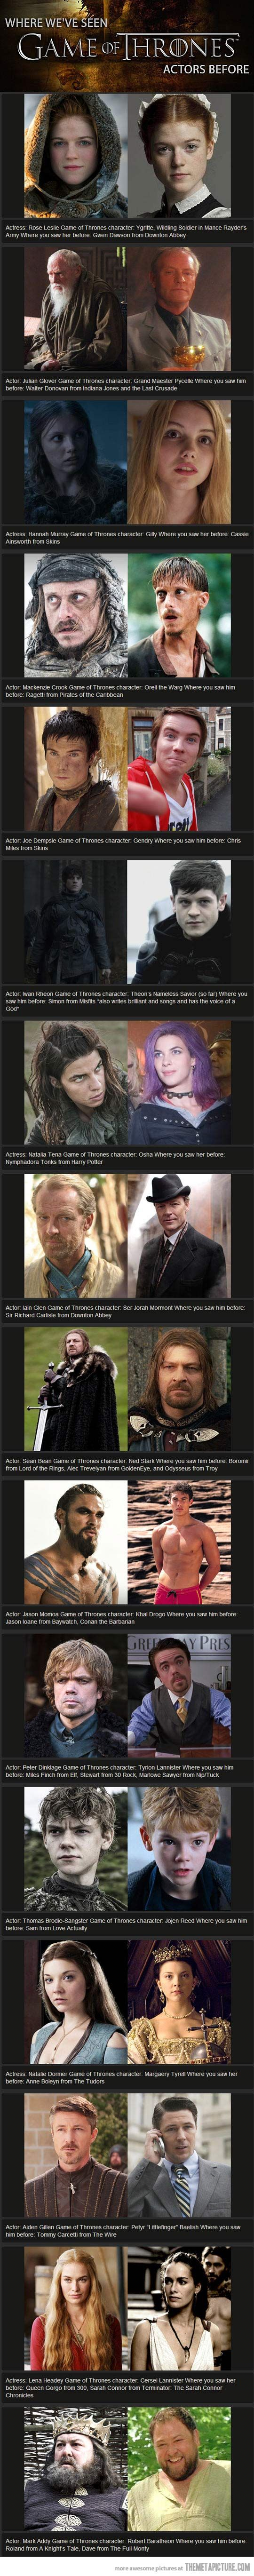 Game of Thrones characters: Where Have We Seen You Before? | Follow here http://pinterest.com/cakespinyoface/geekery/ for even more Geekery-- art, tech and more!